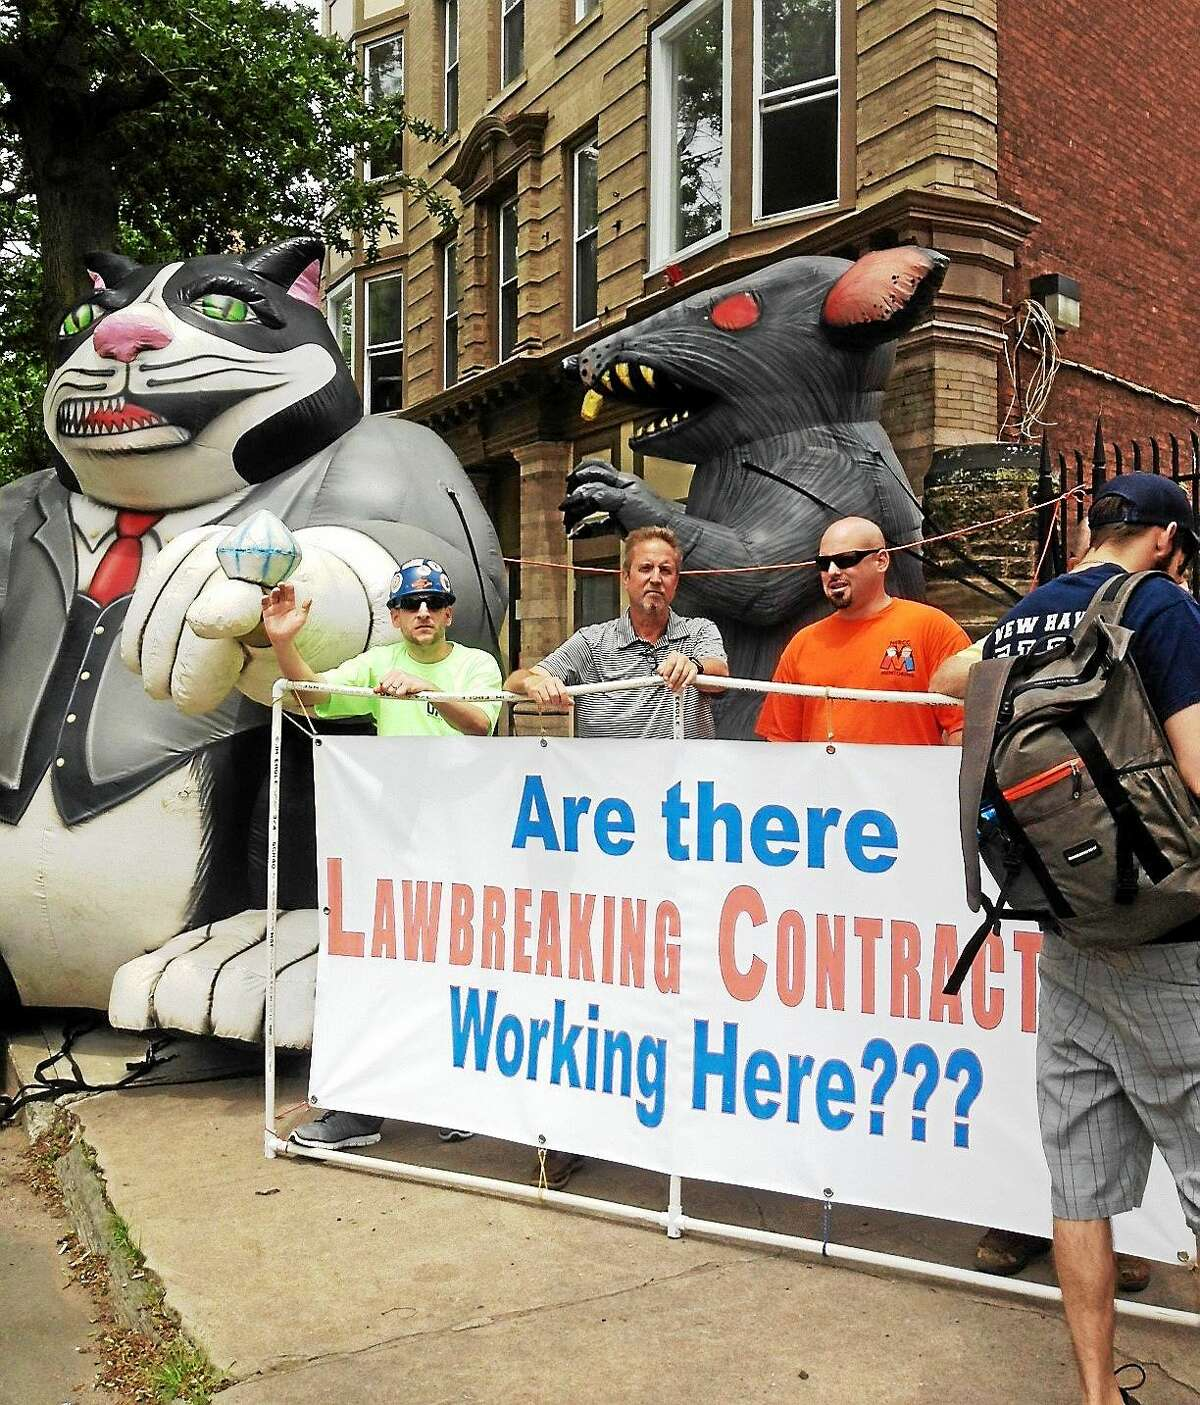 (Mary O'Leary - New Haven Register) Outside 9 Dixwell Ave. where New England Regional Council of Carpenters protested Tuesday. Ruben Hernandez Enterprises cited by labor dept for not having worker's comp and paying workers cash. Site owned by Yale Properties.